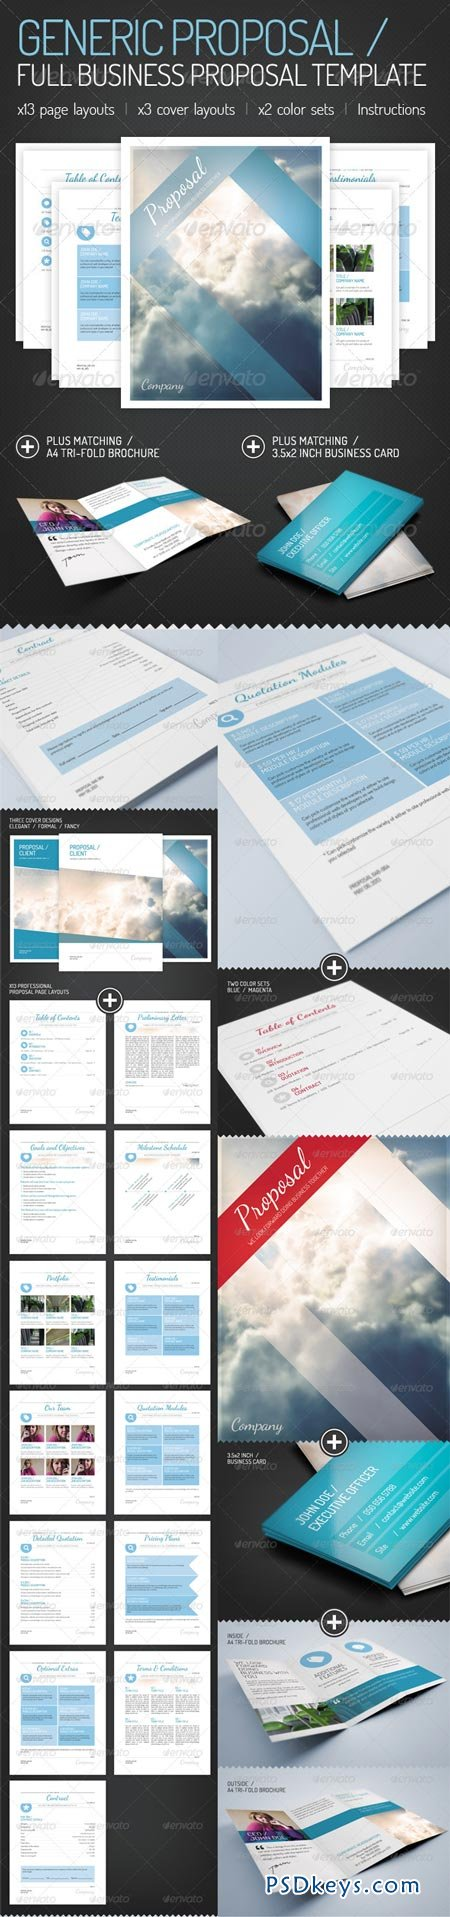 Download Business Proposal Template  Proposal Layouts